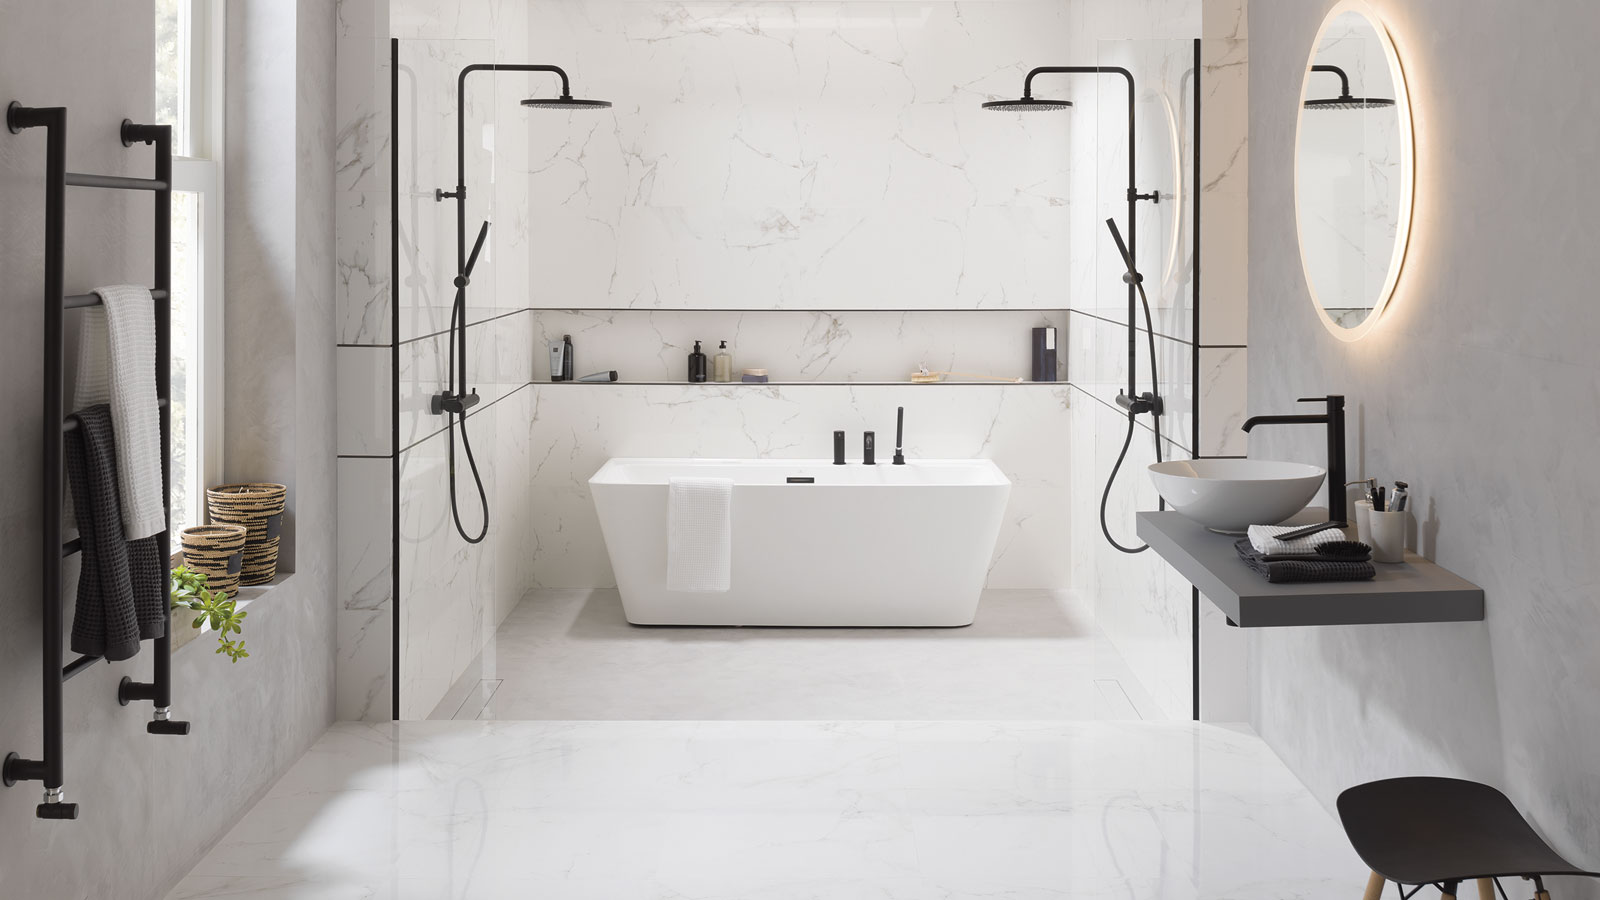 Carrara by Porcelanosa: A multidisciplinary collection inspired by Italian white marble